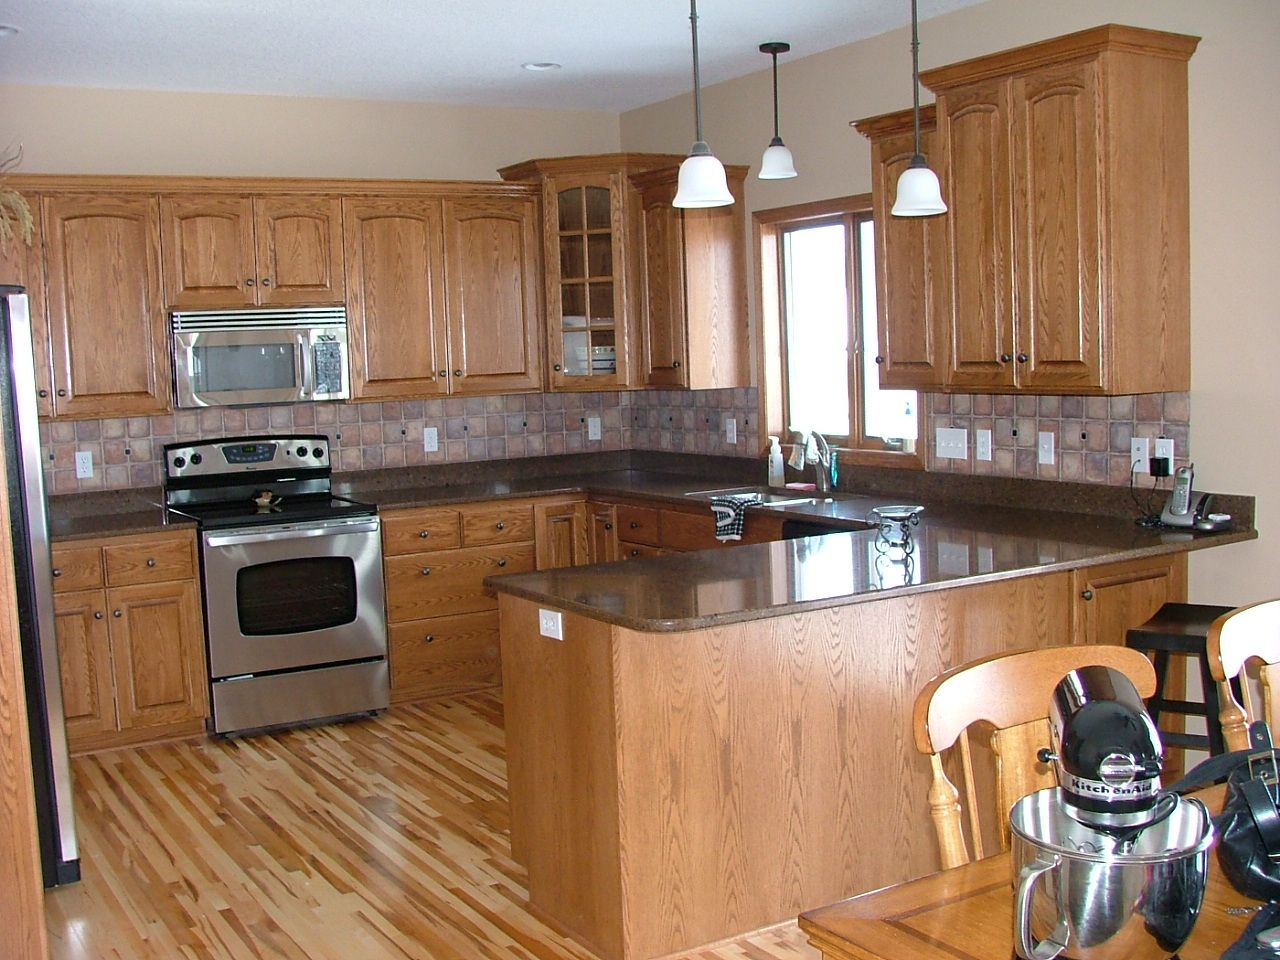 Pictures Of Kitchen Cabinets And Granite Countertops - Black granite counter oak hickory oak wood kitchen cabinet including black granite